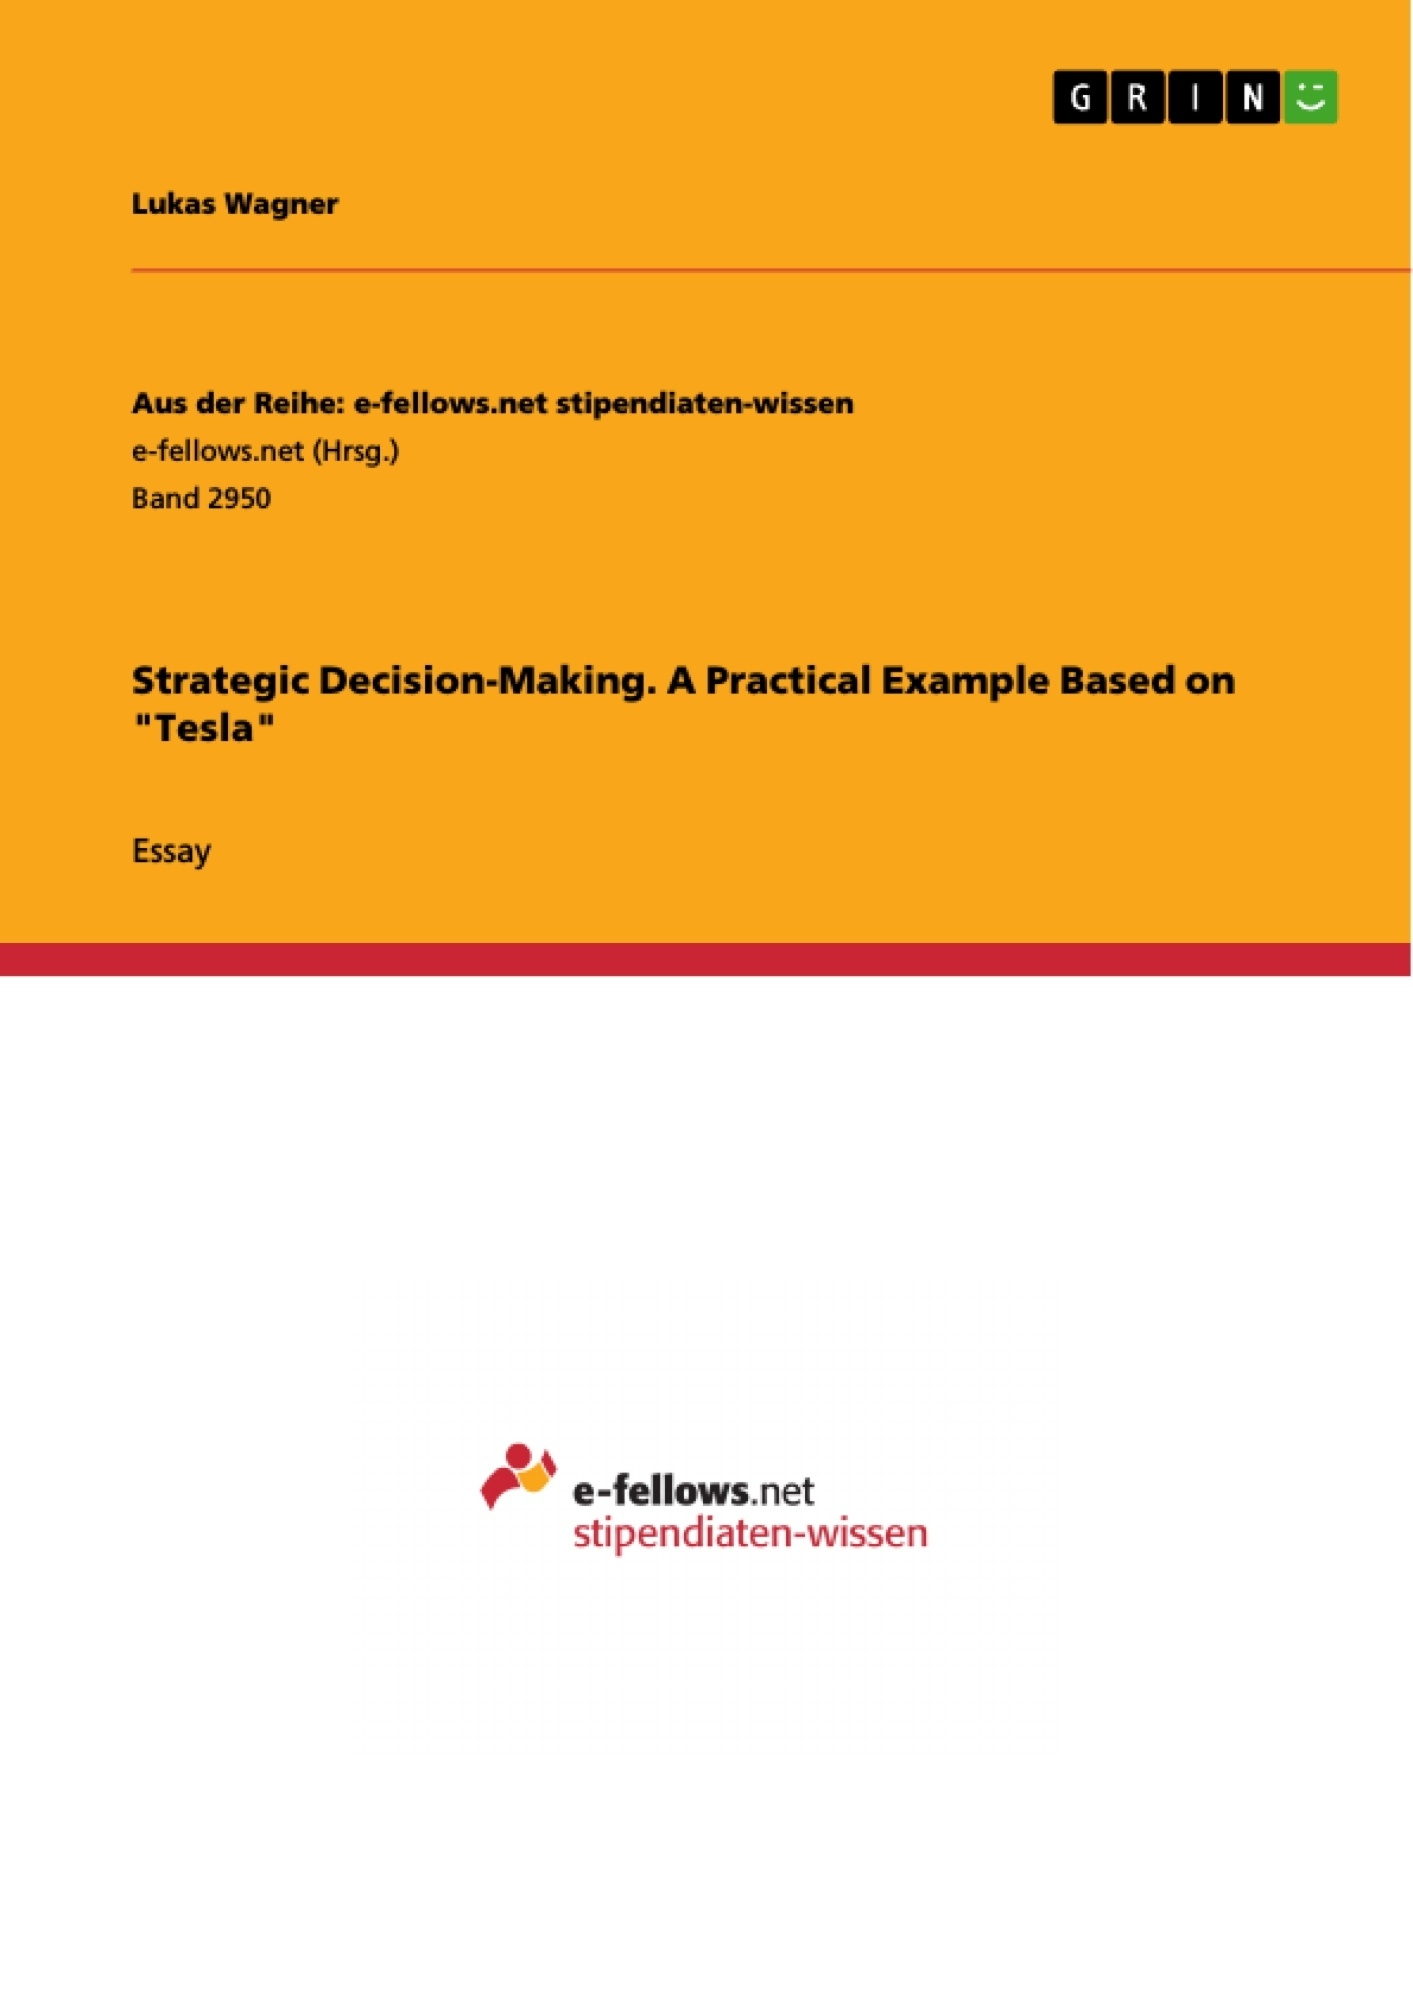 """Title: Strategic Decision-Making. A Practical Example Based on """"Tesla"""""""